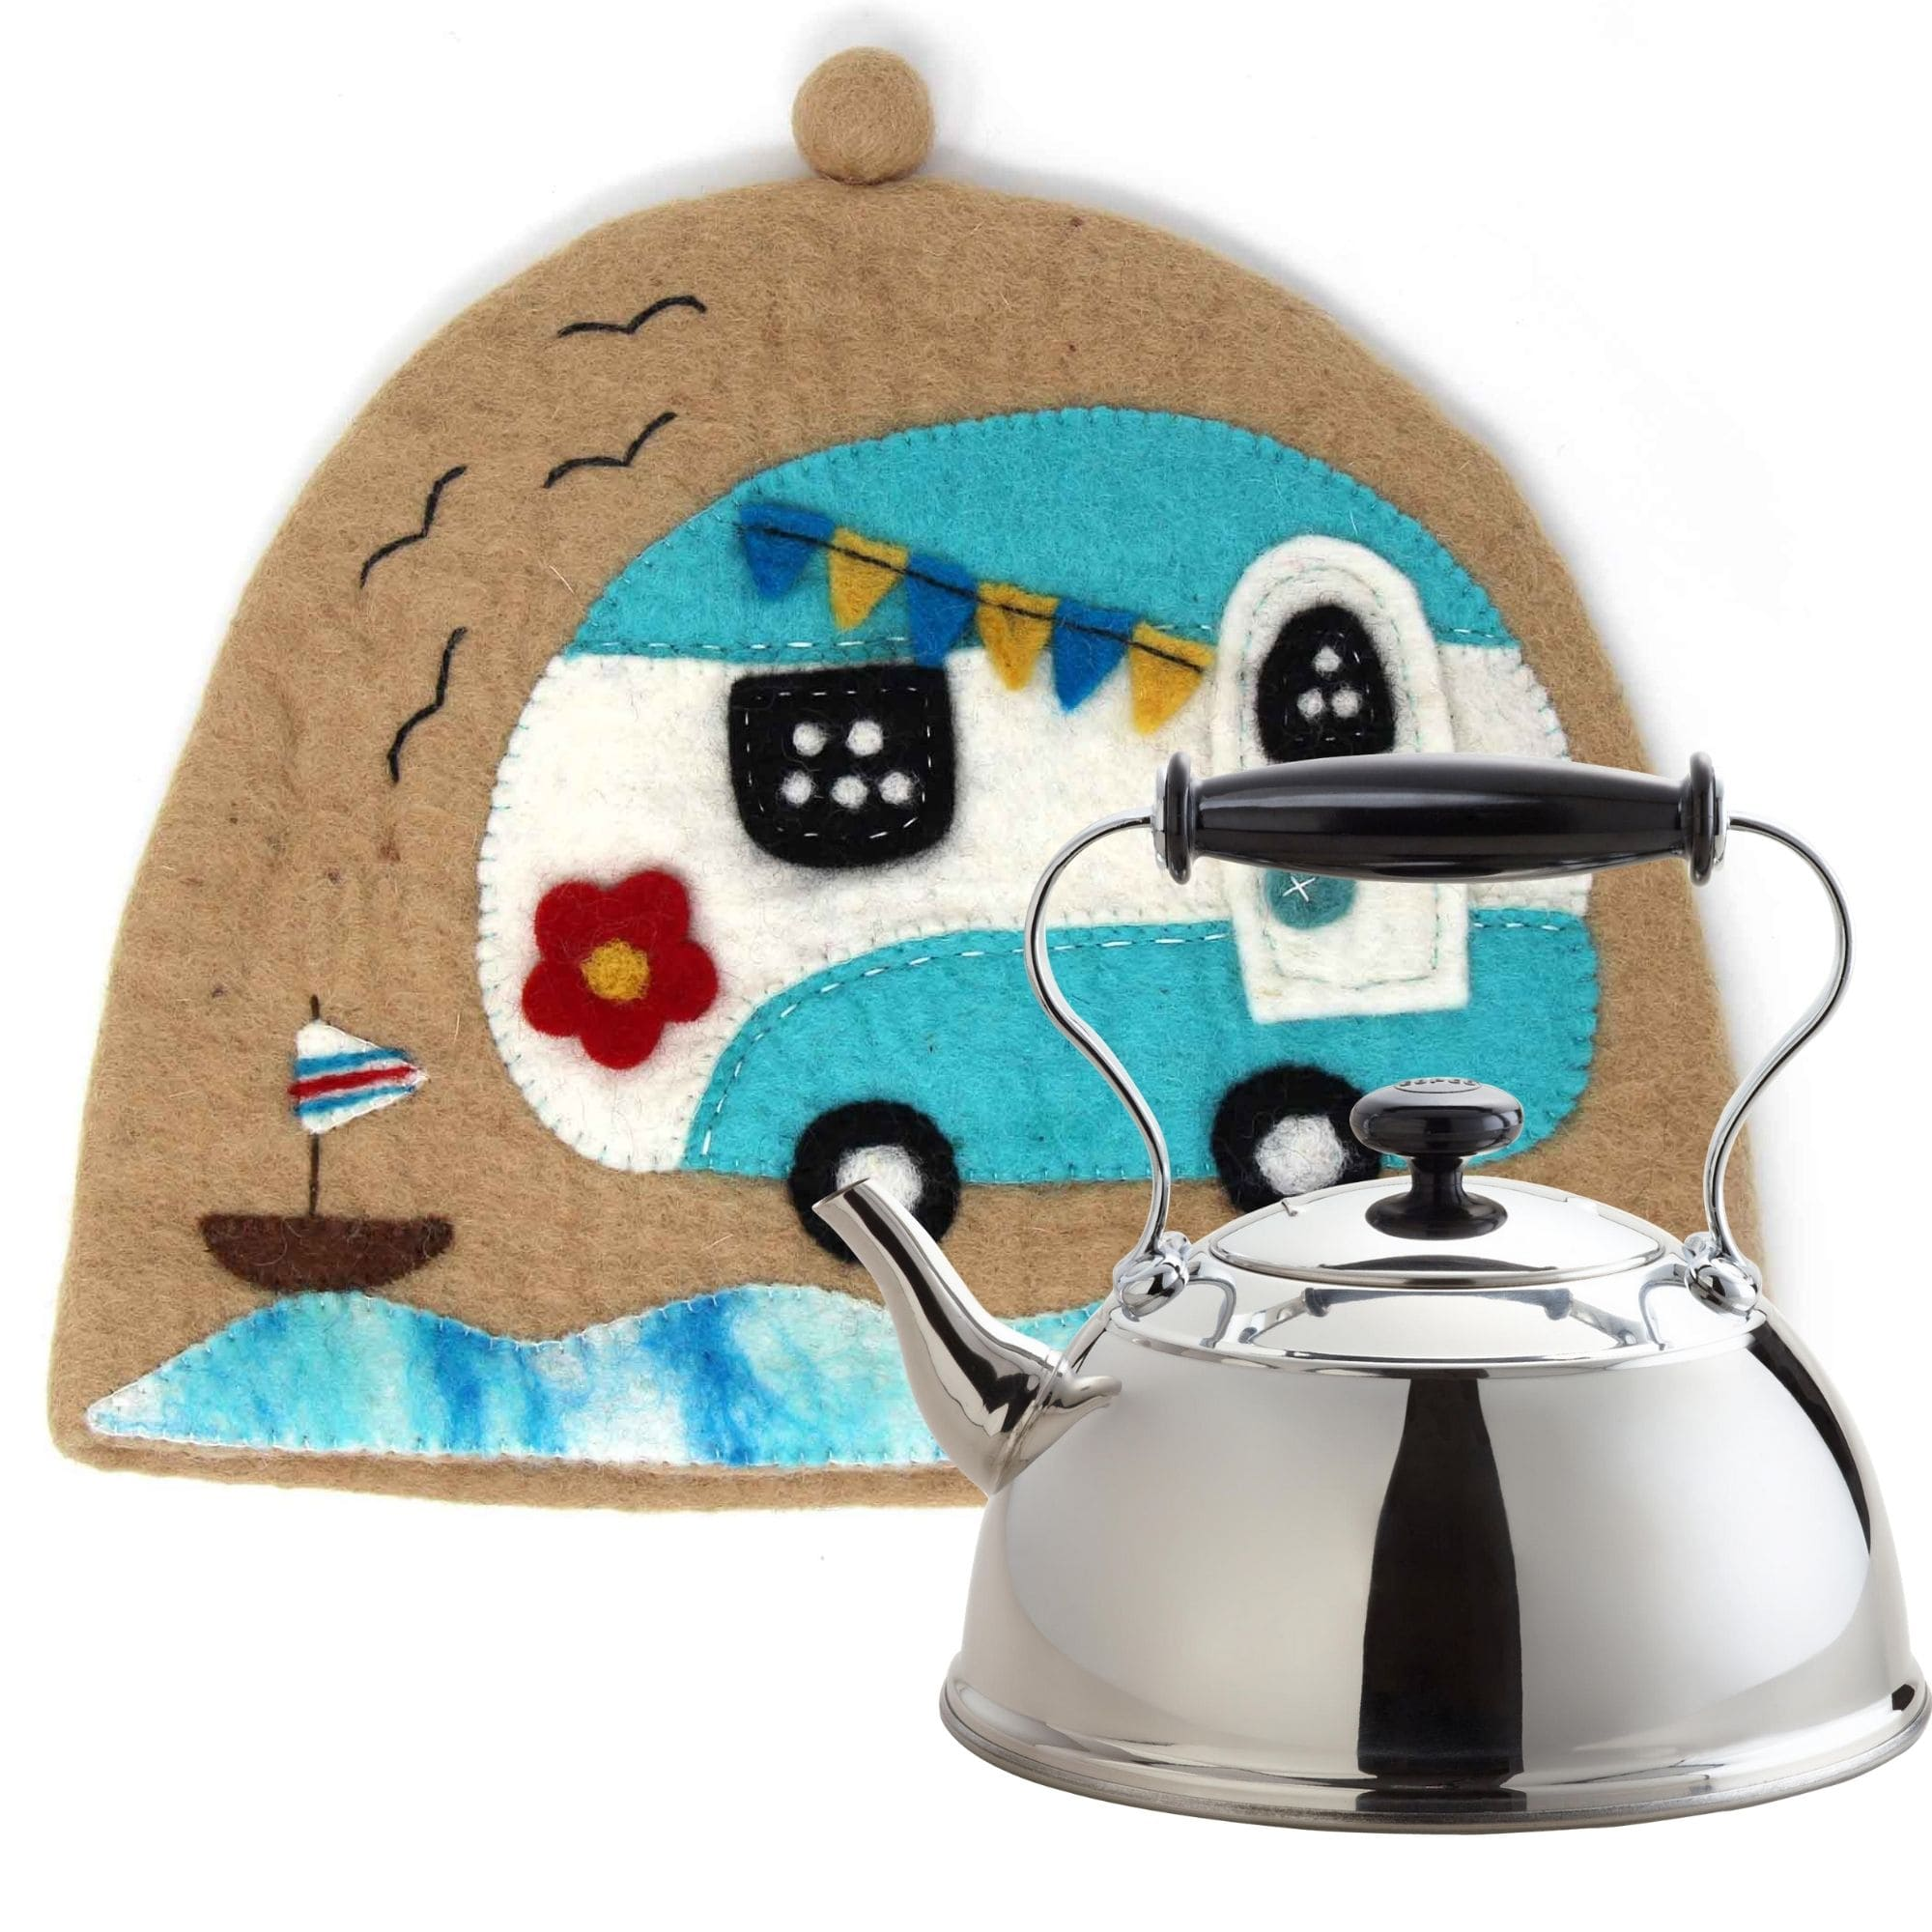 Happy Camper Van Tea Cozy